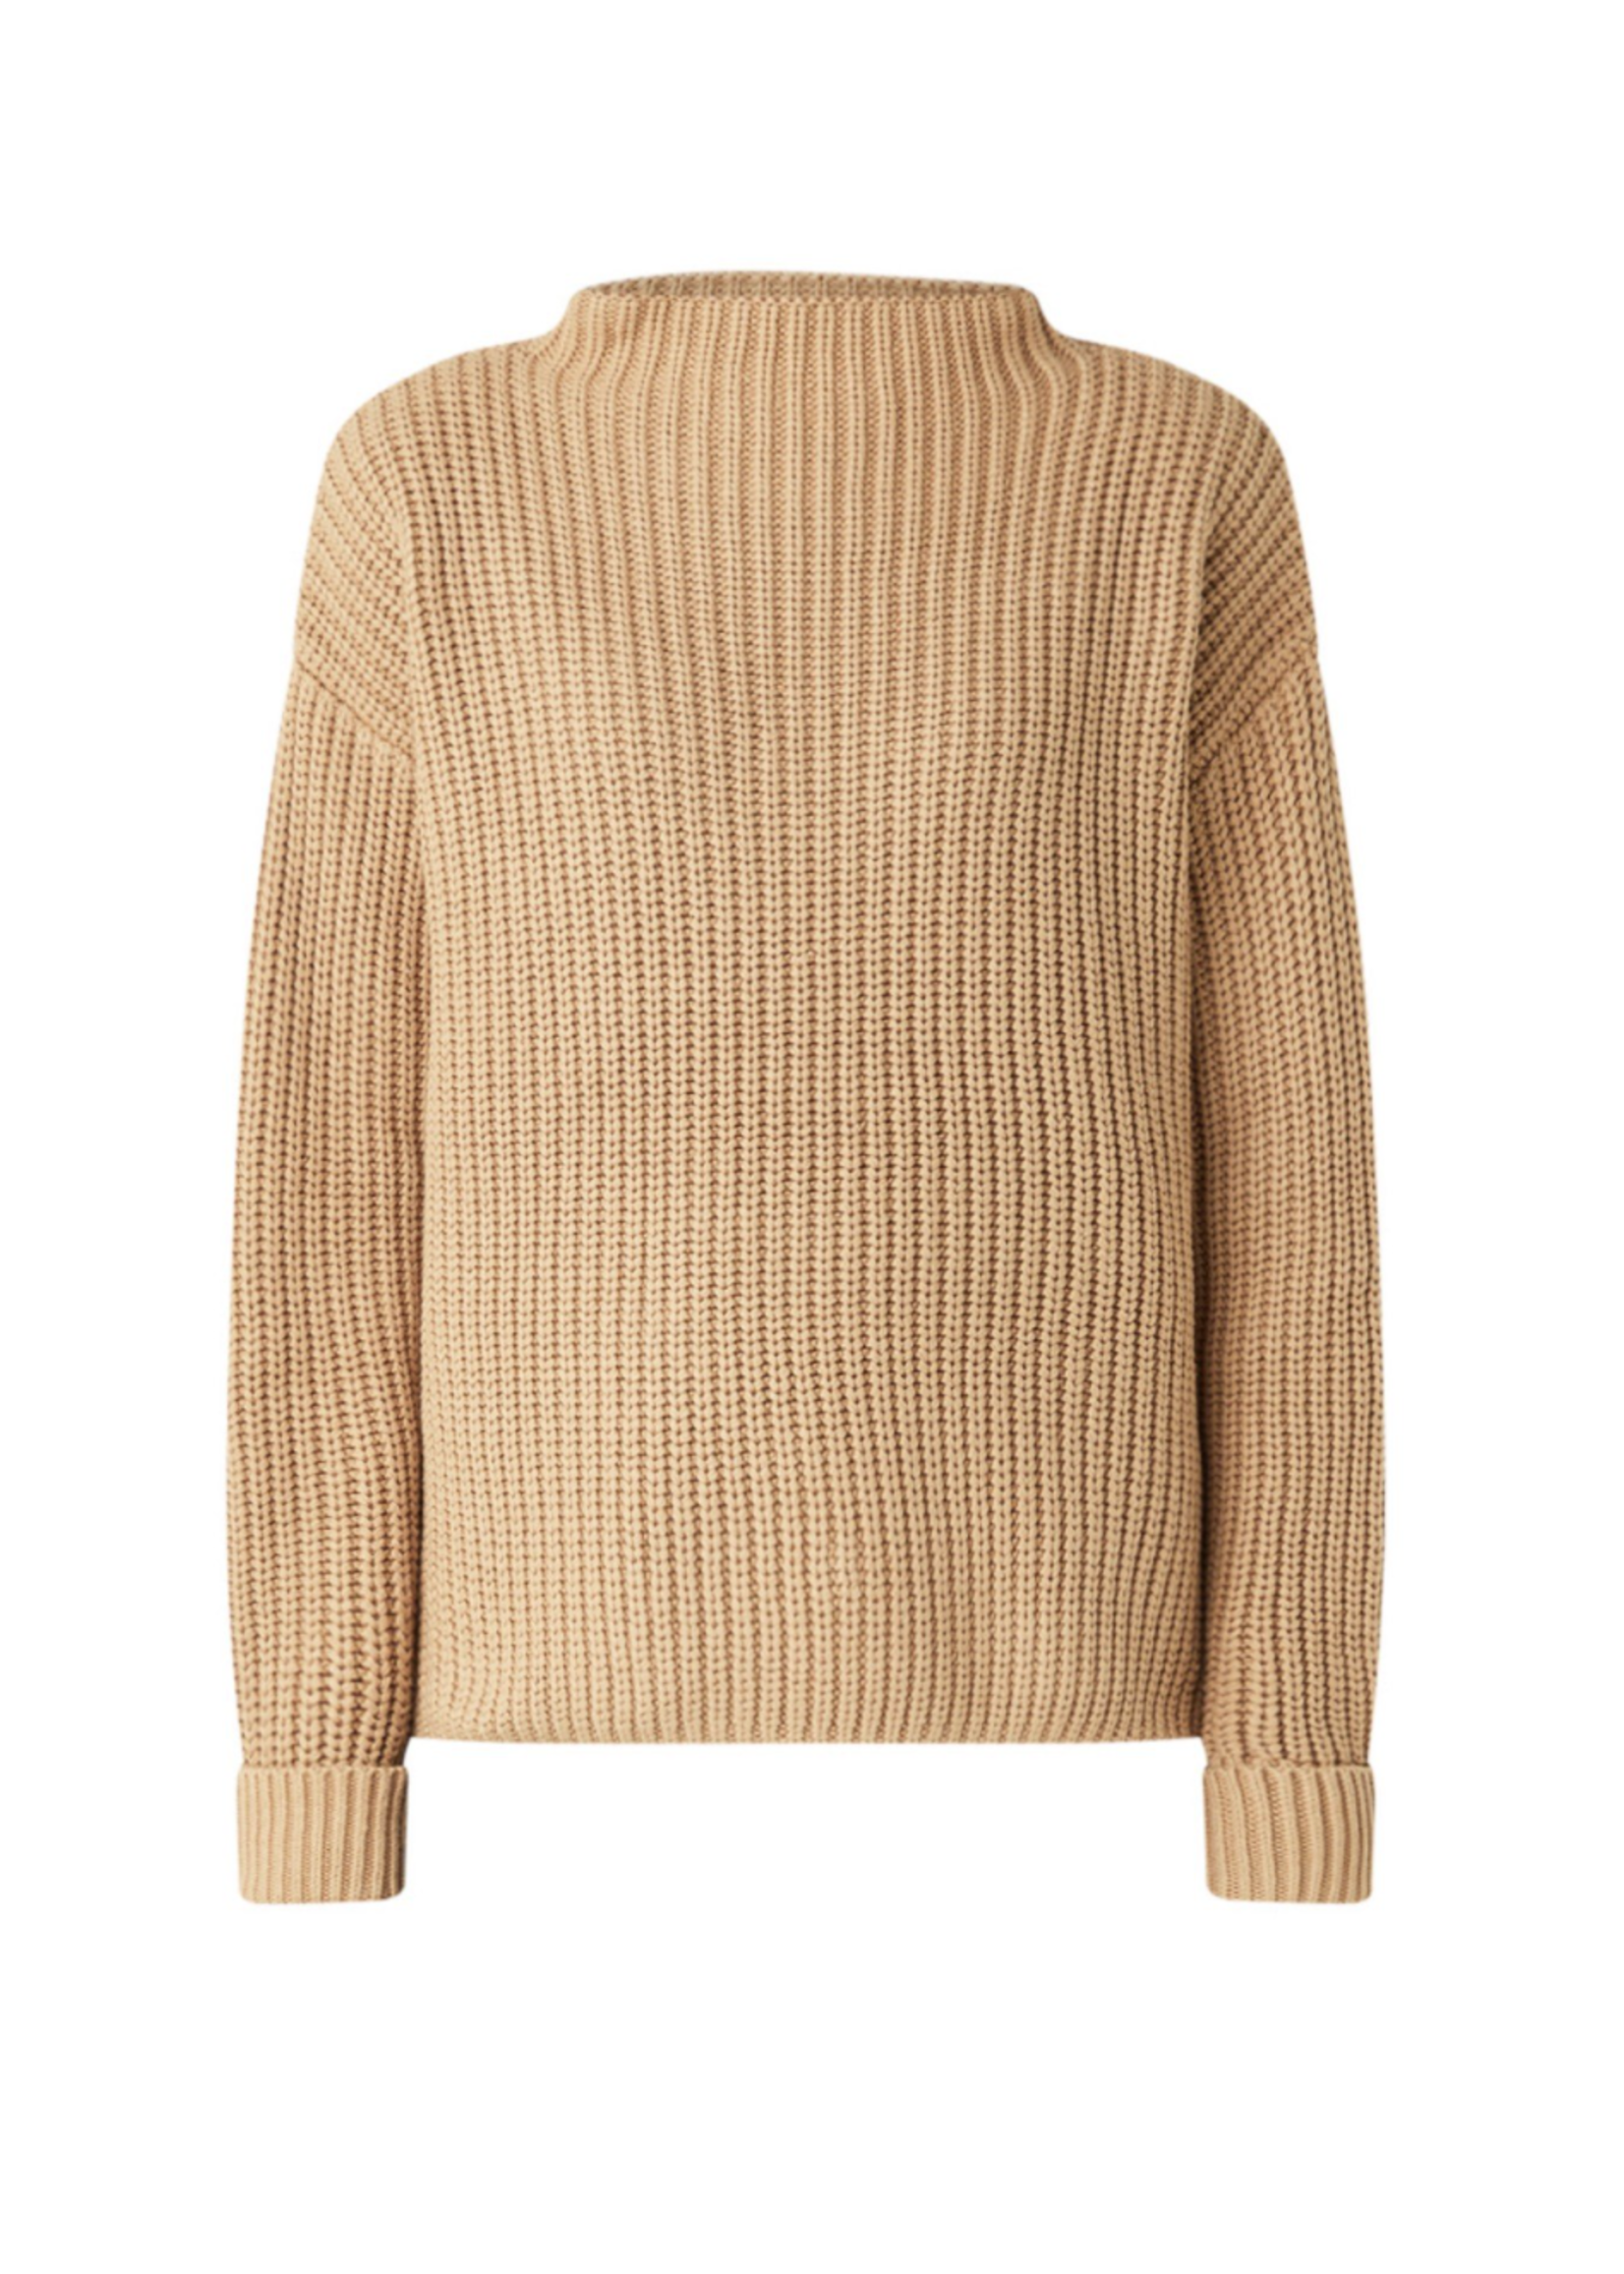 Selected Femme Selma knit t-neck